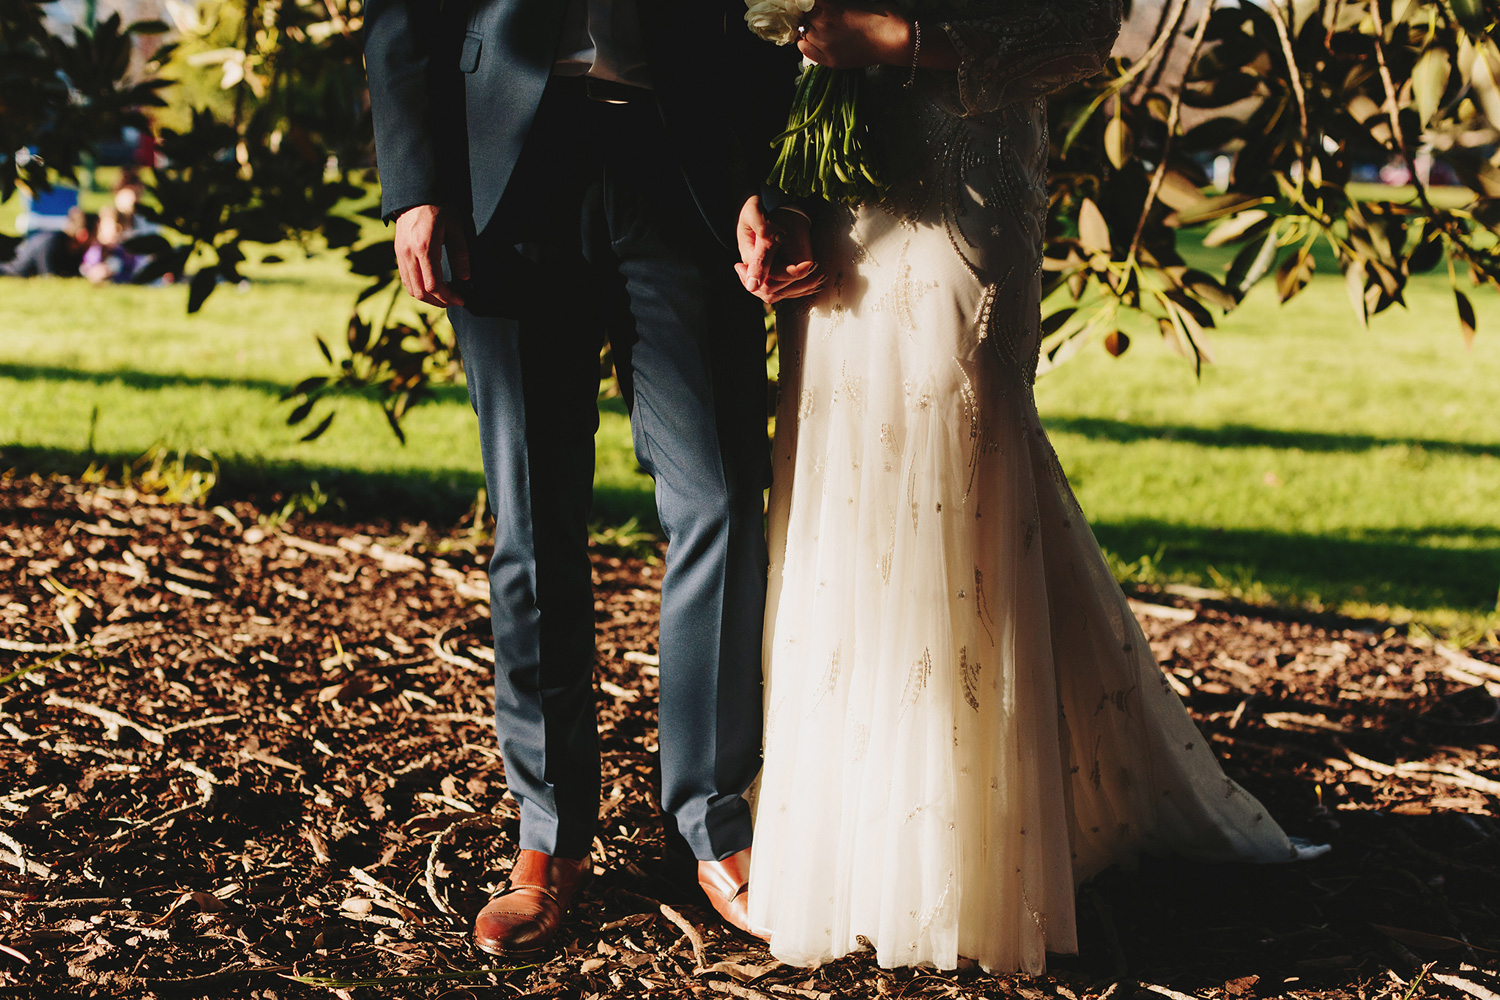 072-Sayher-&-Amelia-Melbourne-Wedding.jpg